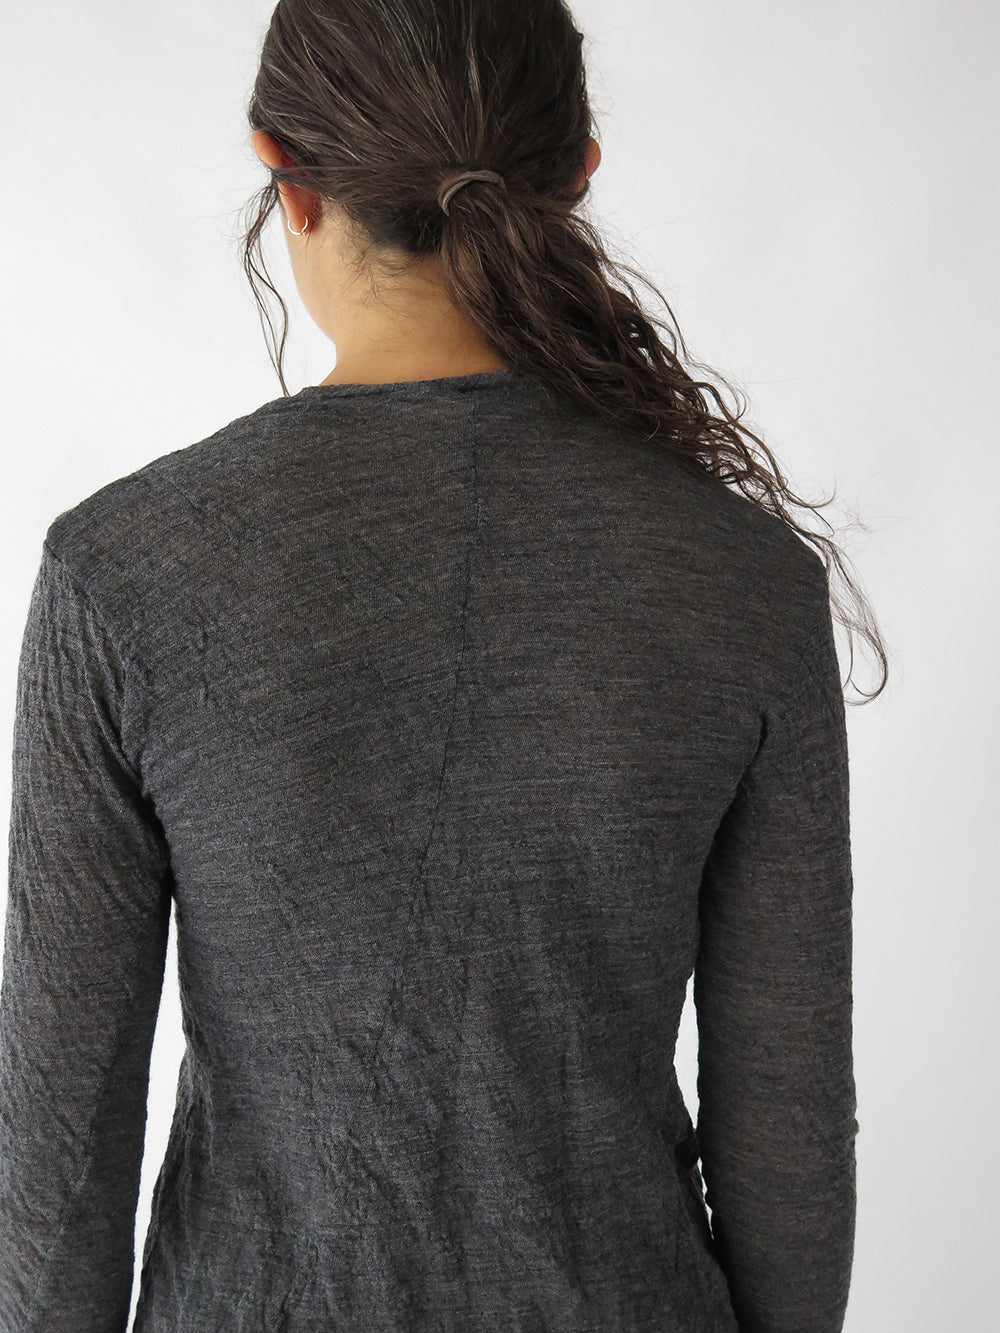 hazel brown t-shirt in charcoal